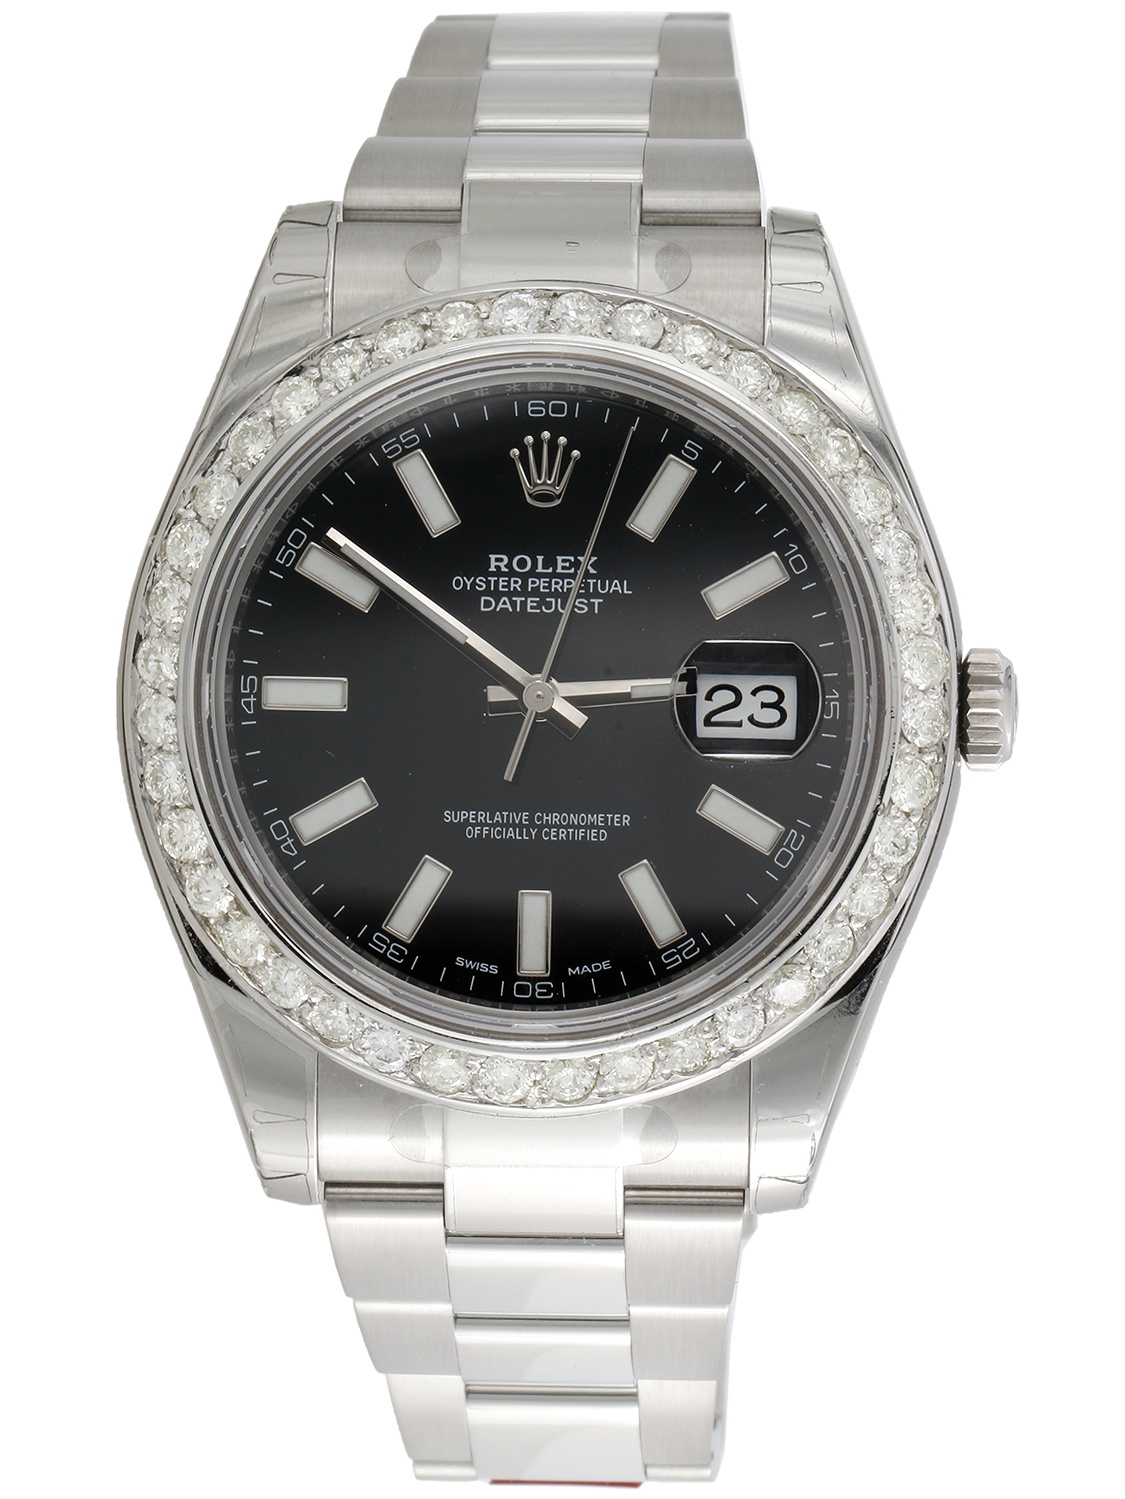 Mens 41mm 116300 Rolex DateJust II Real Diamond Watch Black Stick Dial 2.75 CT.